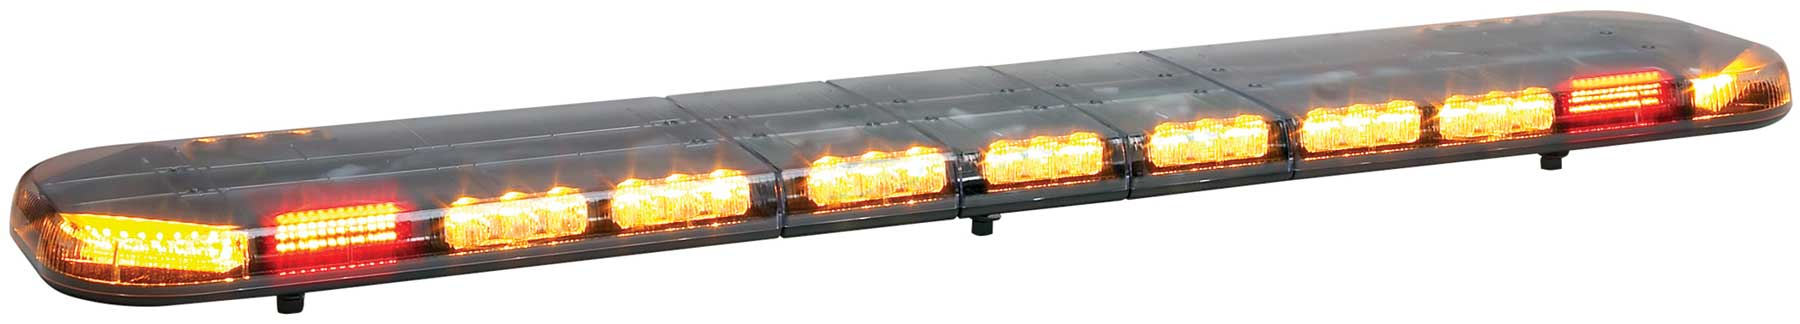 Whelen Towman's™ Justice® Competitor™ LED Lightbar